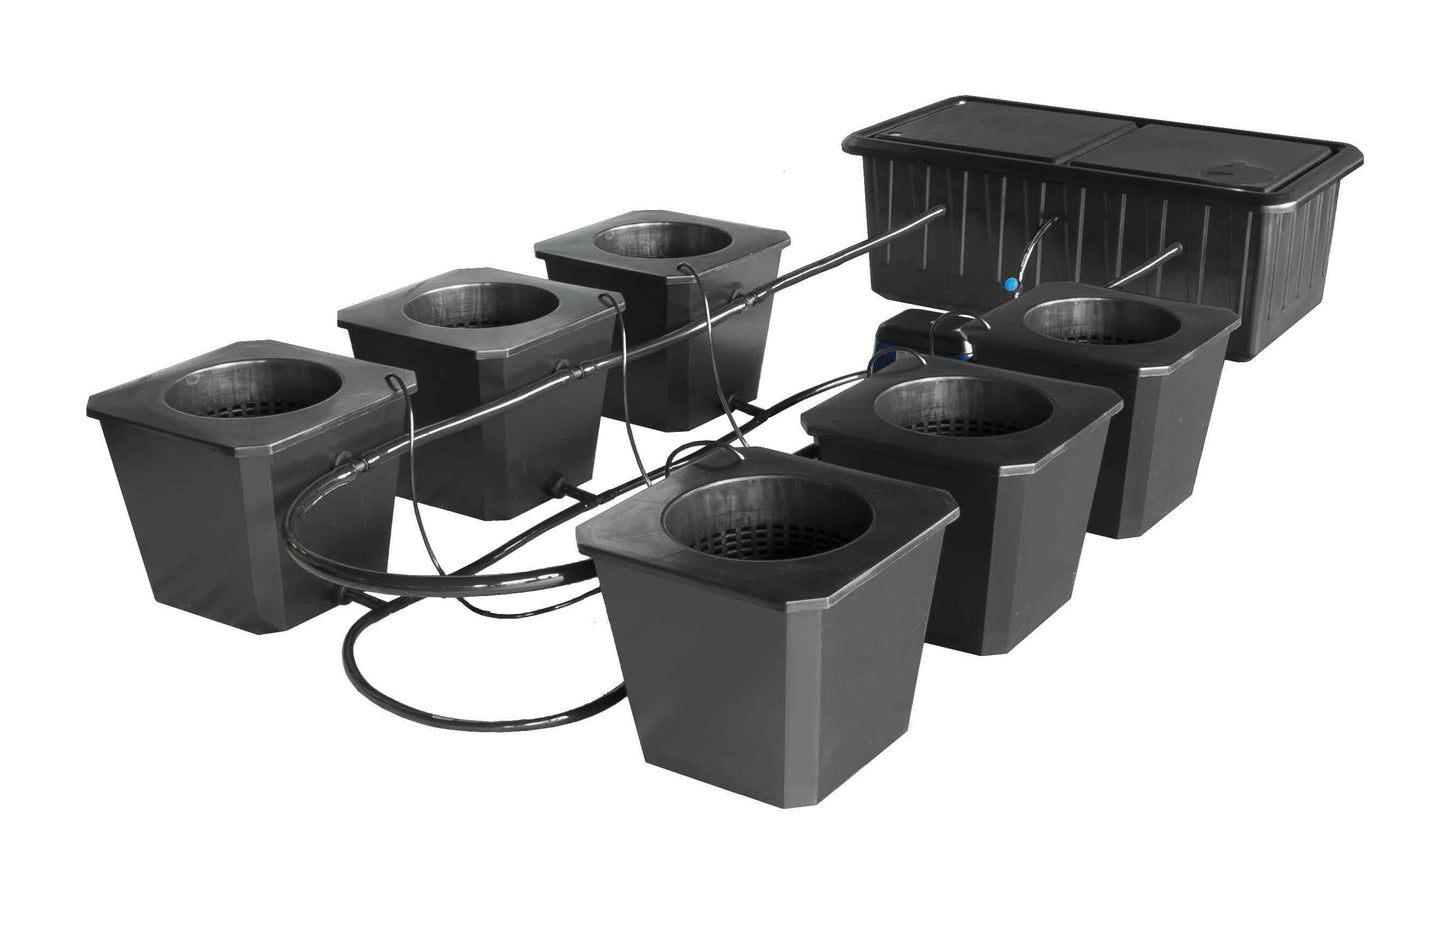 SuperPonics 6-Plant Bubble Flow Buckets Hydroponic Grow System - GrowTech Garden